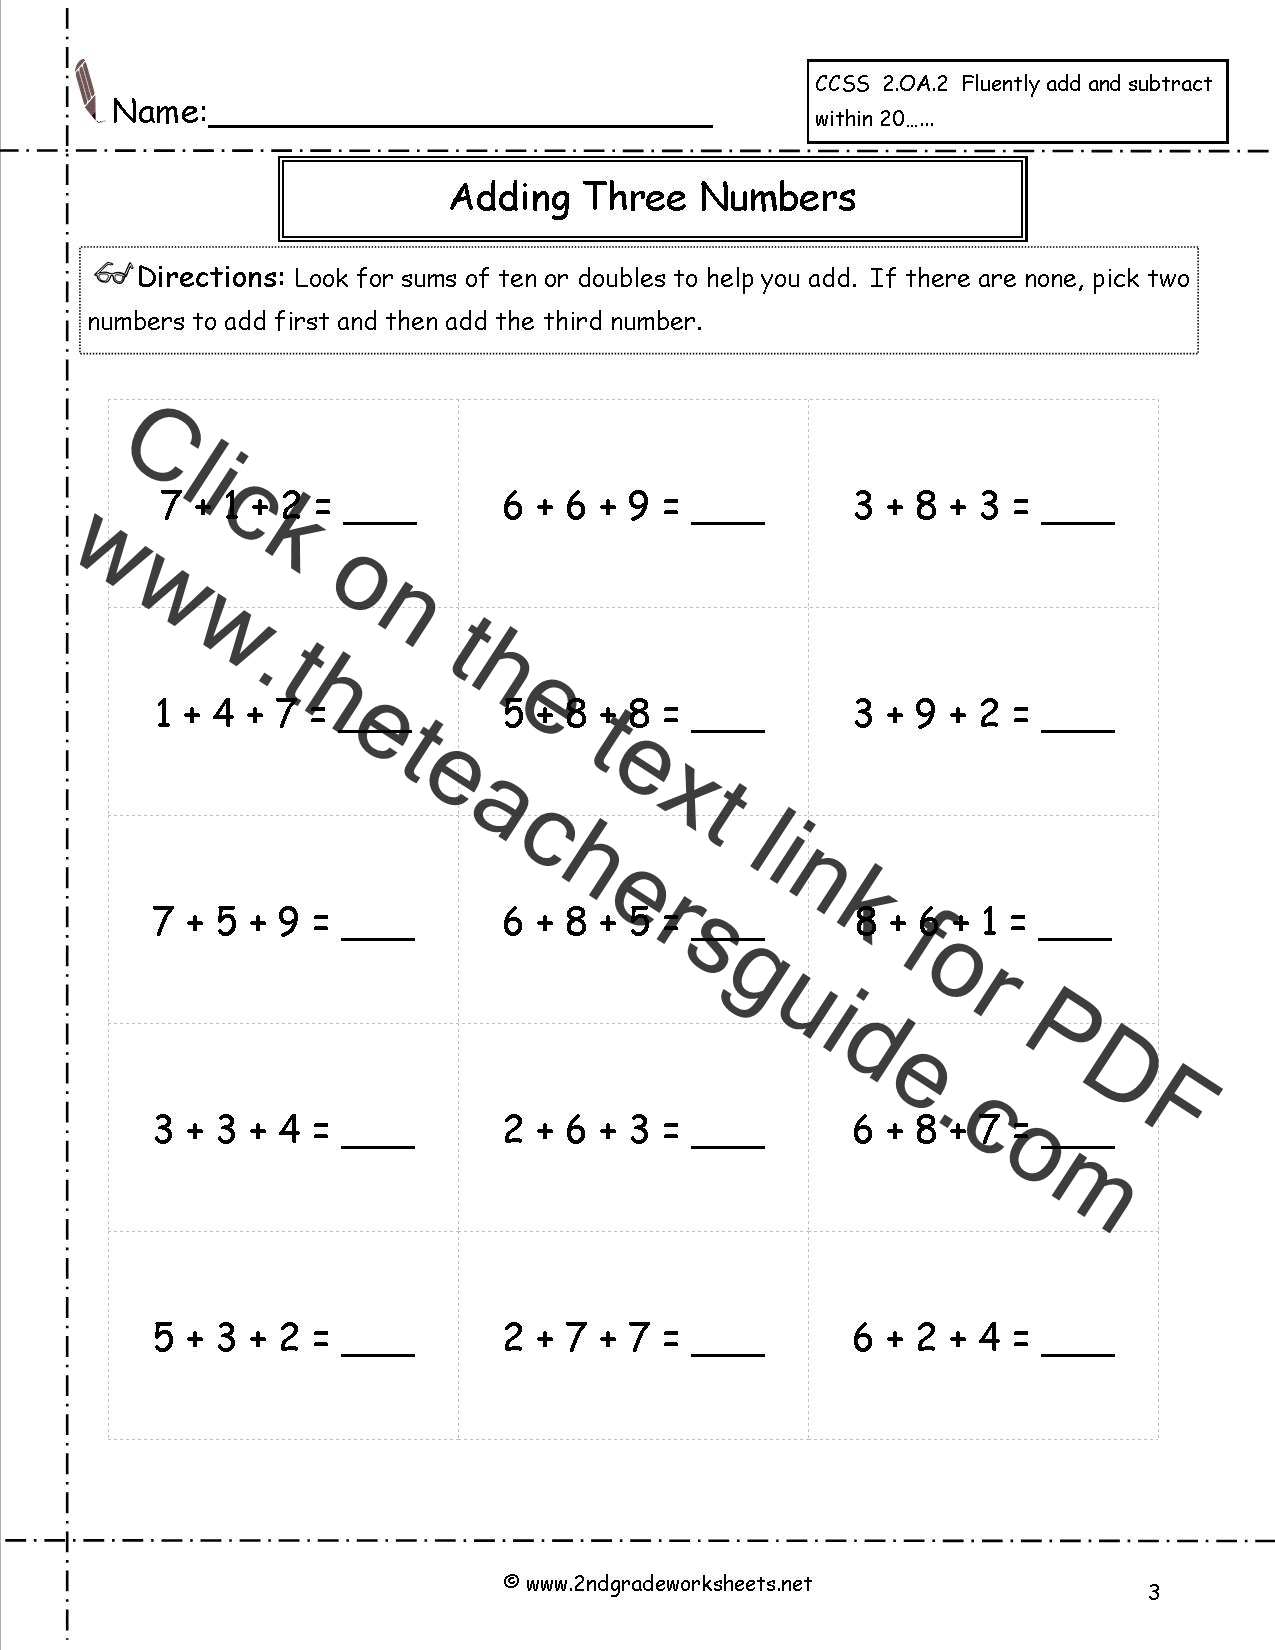 worksheet 3 Number Addition Worksheets adding three or more single digit numbers worksheets digits additon worksheet 2